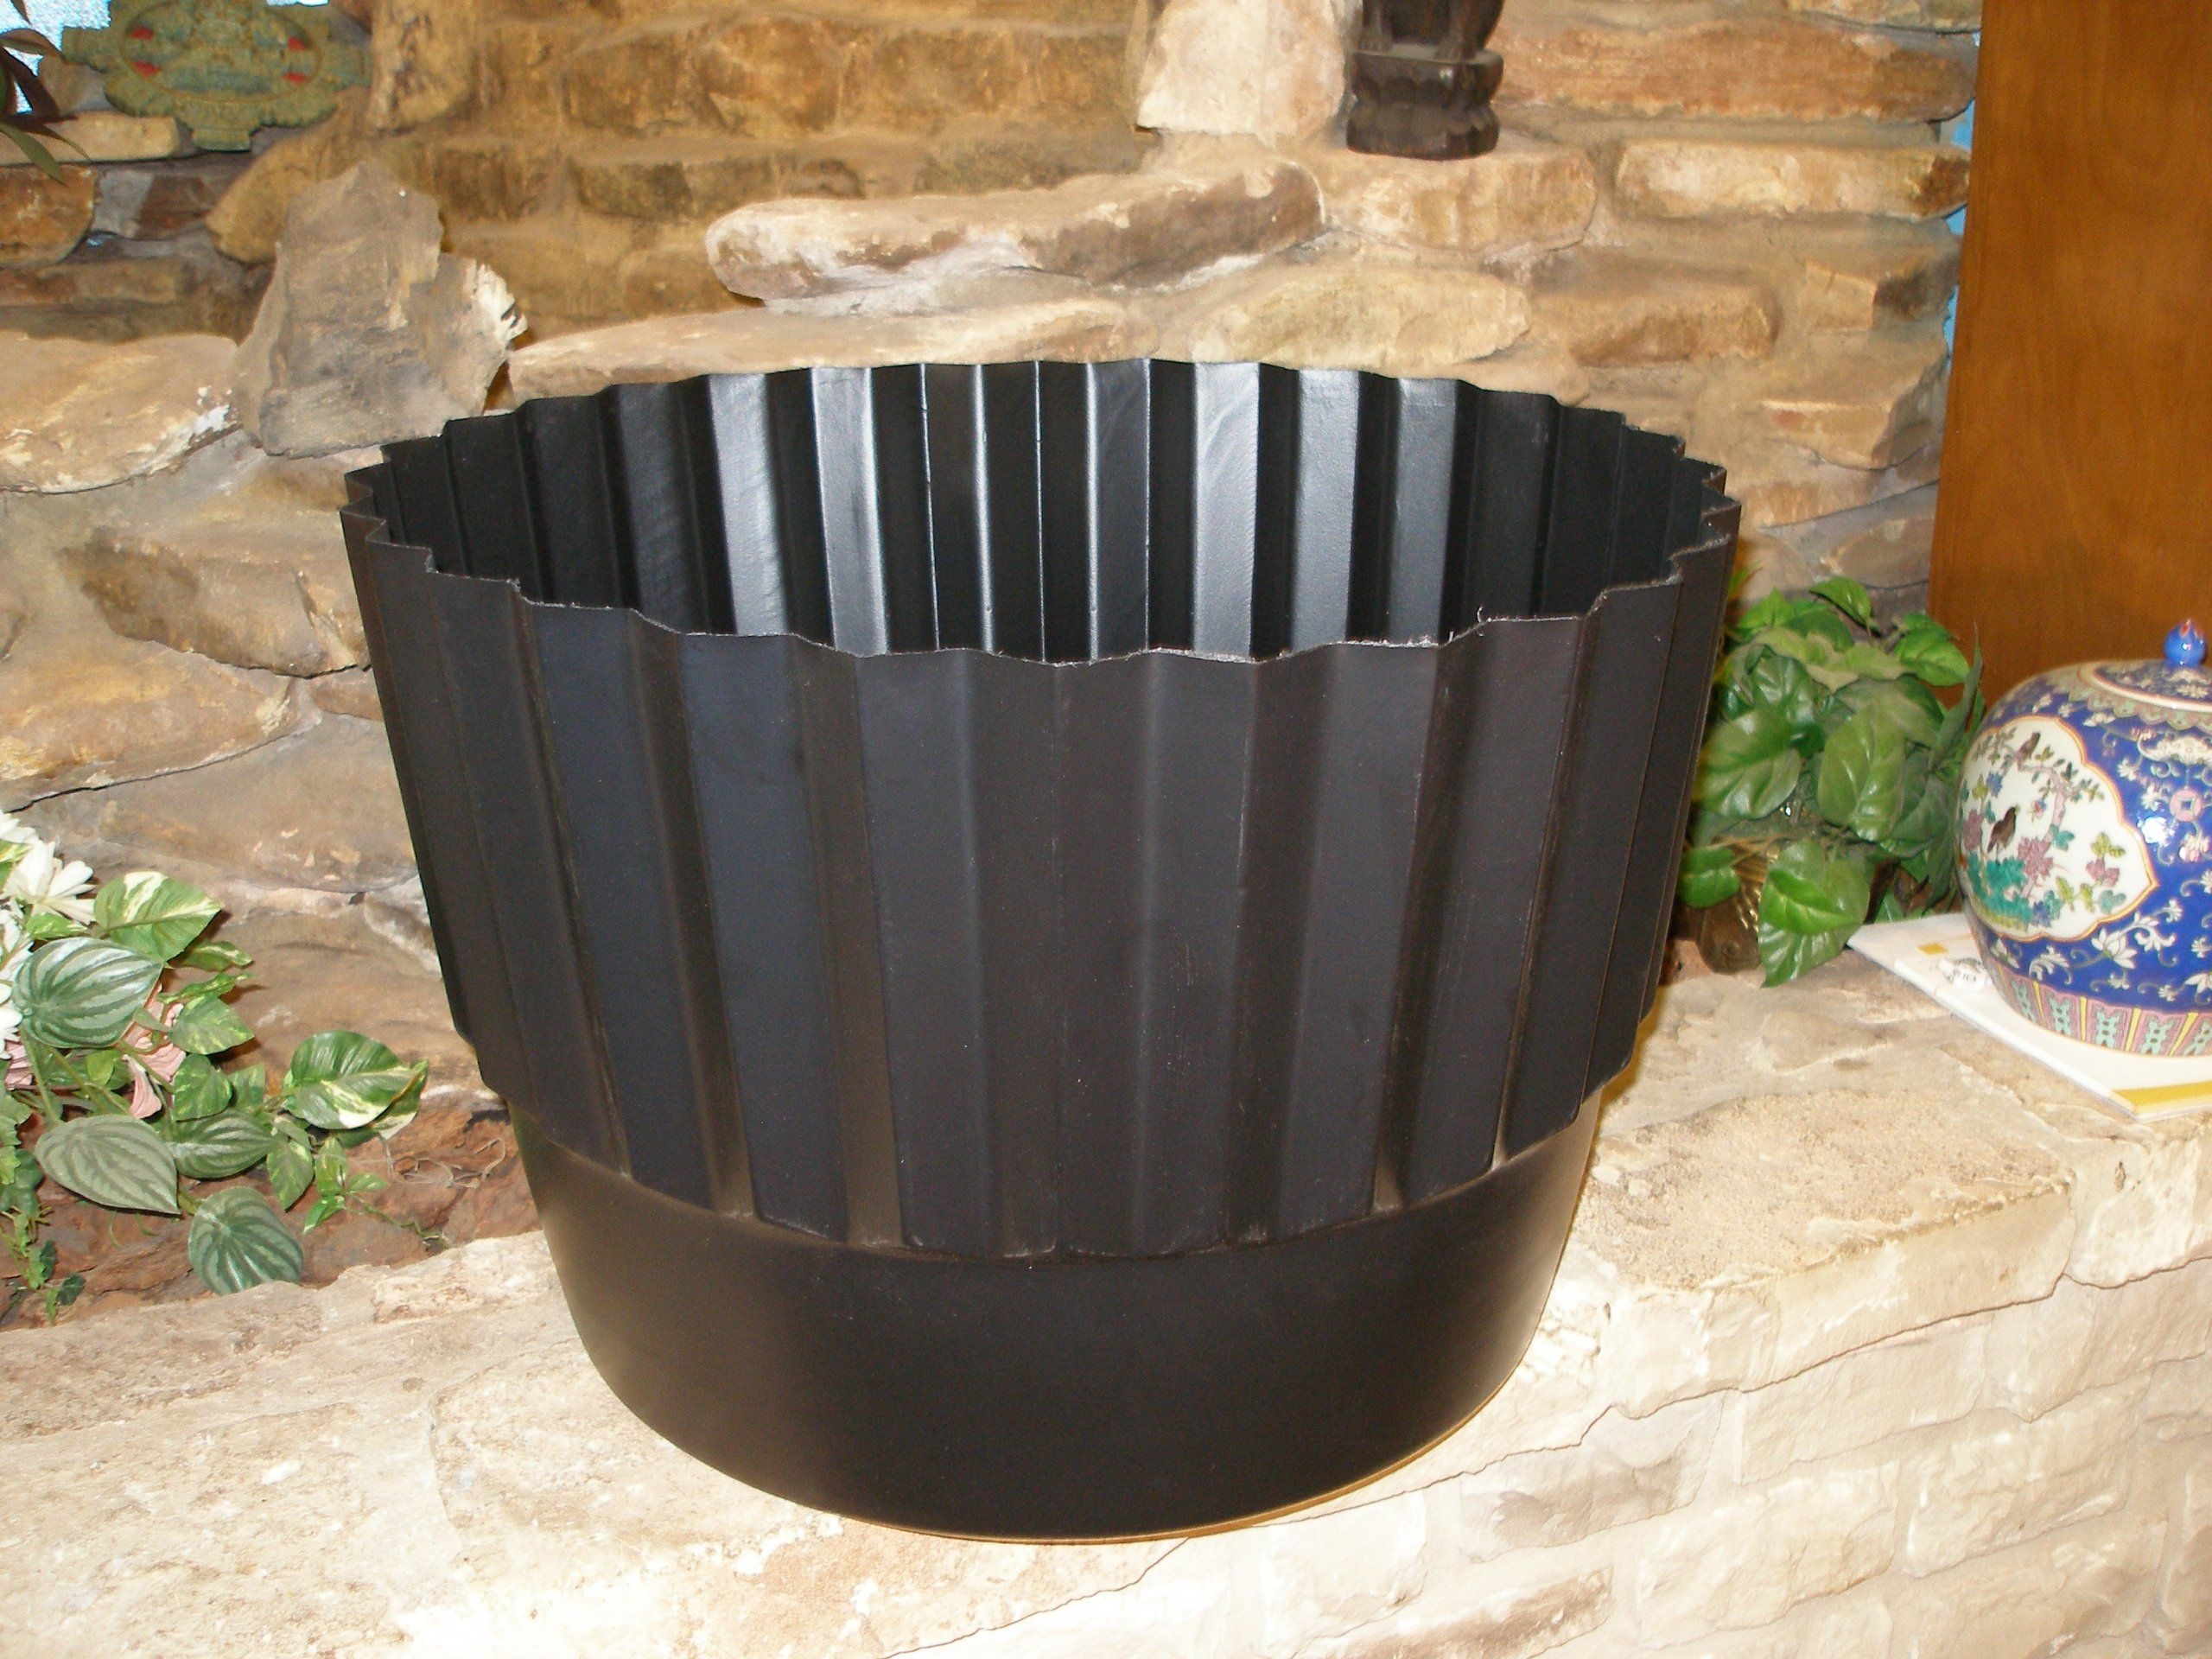 Planter Liners 181002 Lot Of 2 Henta Flex O Liners Protective Whiskey Barrel Liner Black Hdpe 23 Gal Whiskey Barrel Planter Barrel Planter Planter Liners